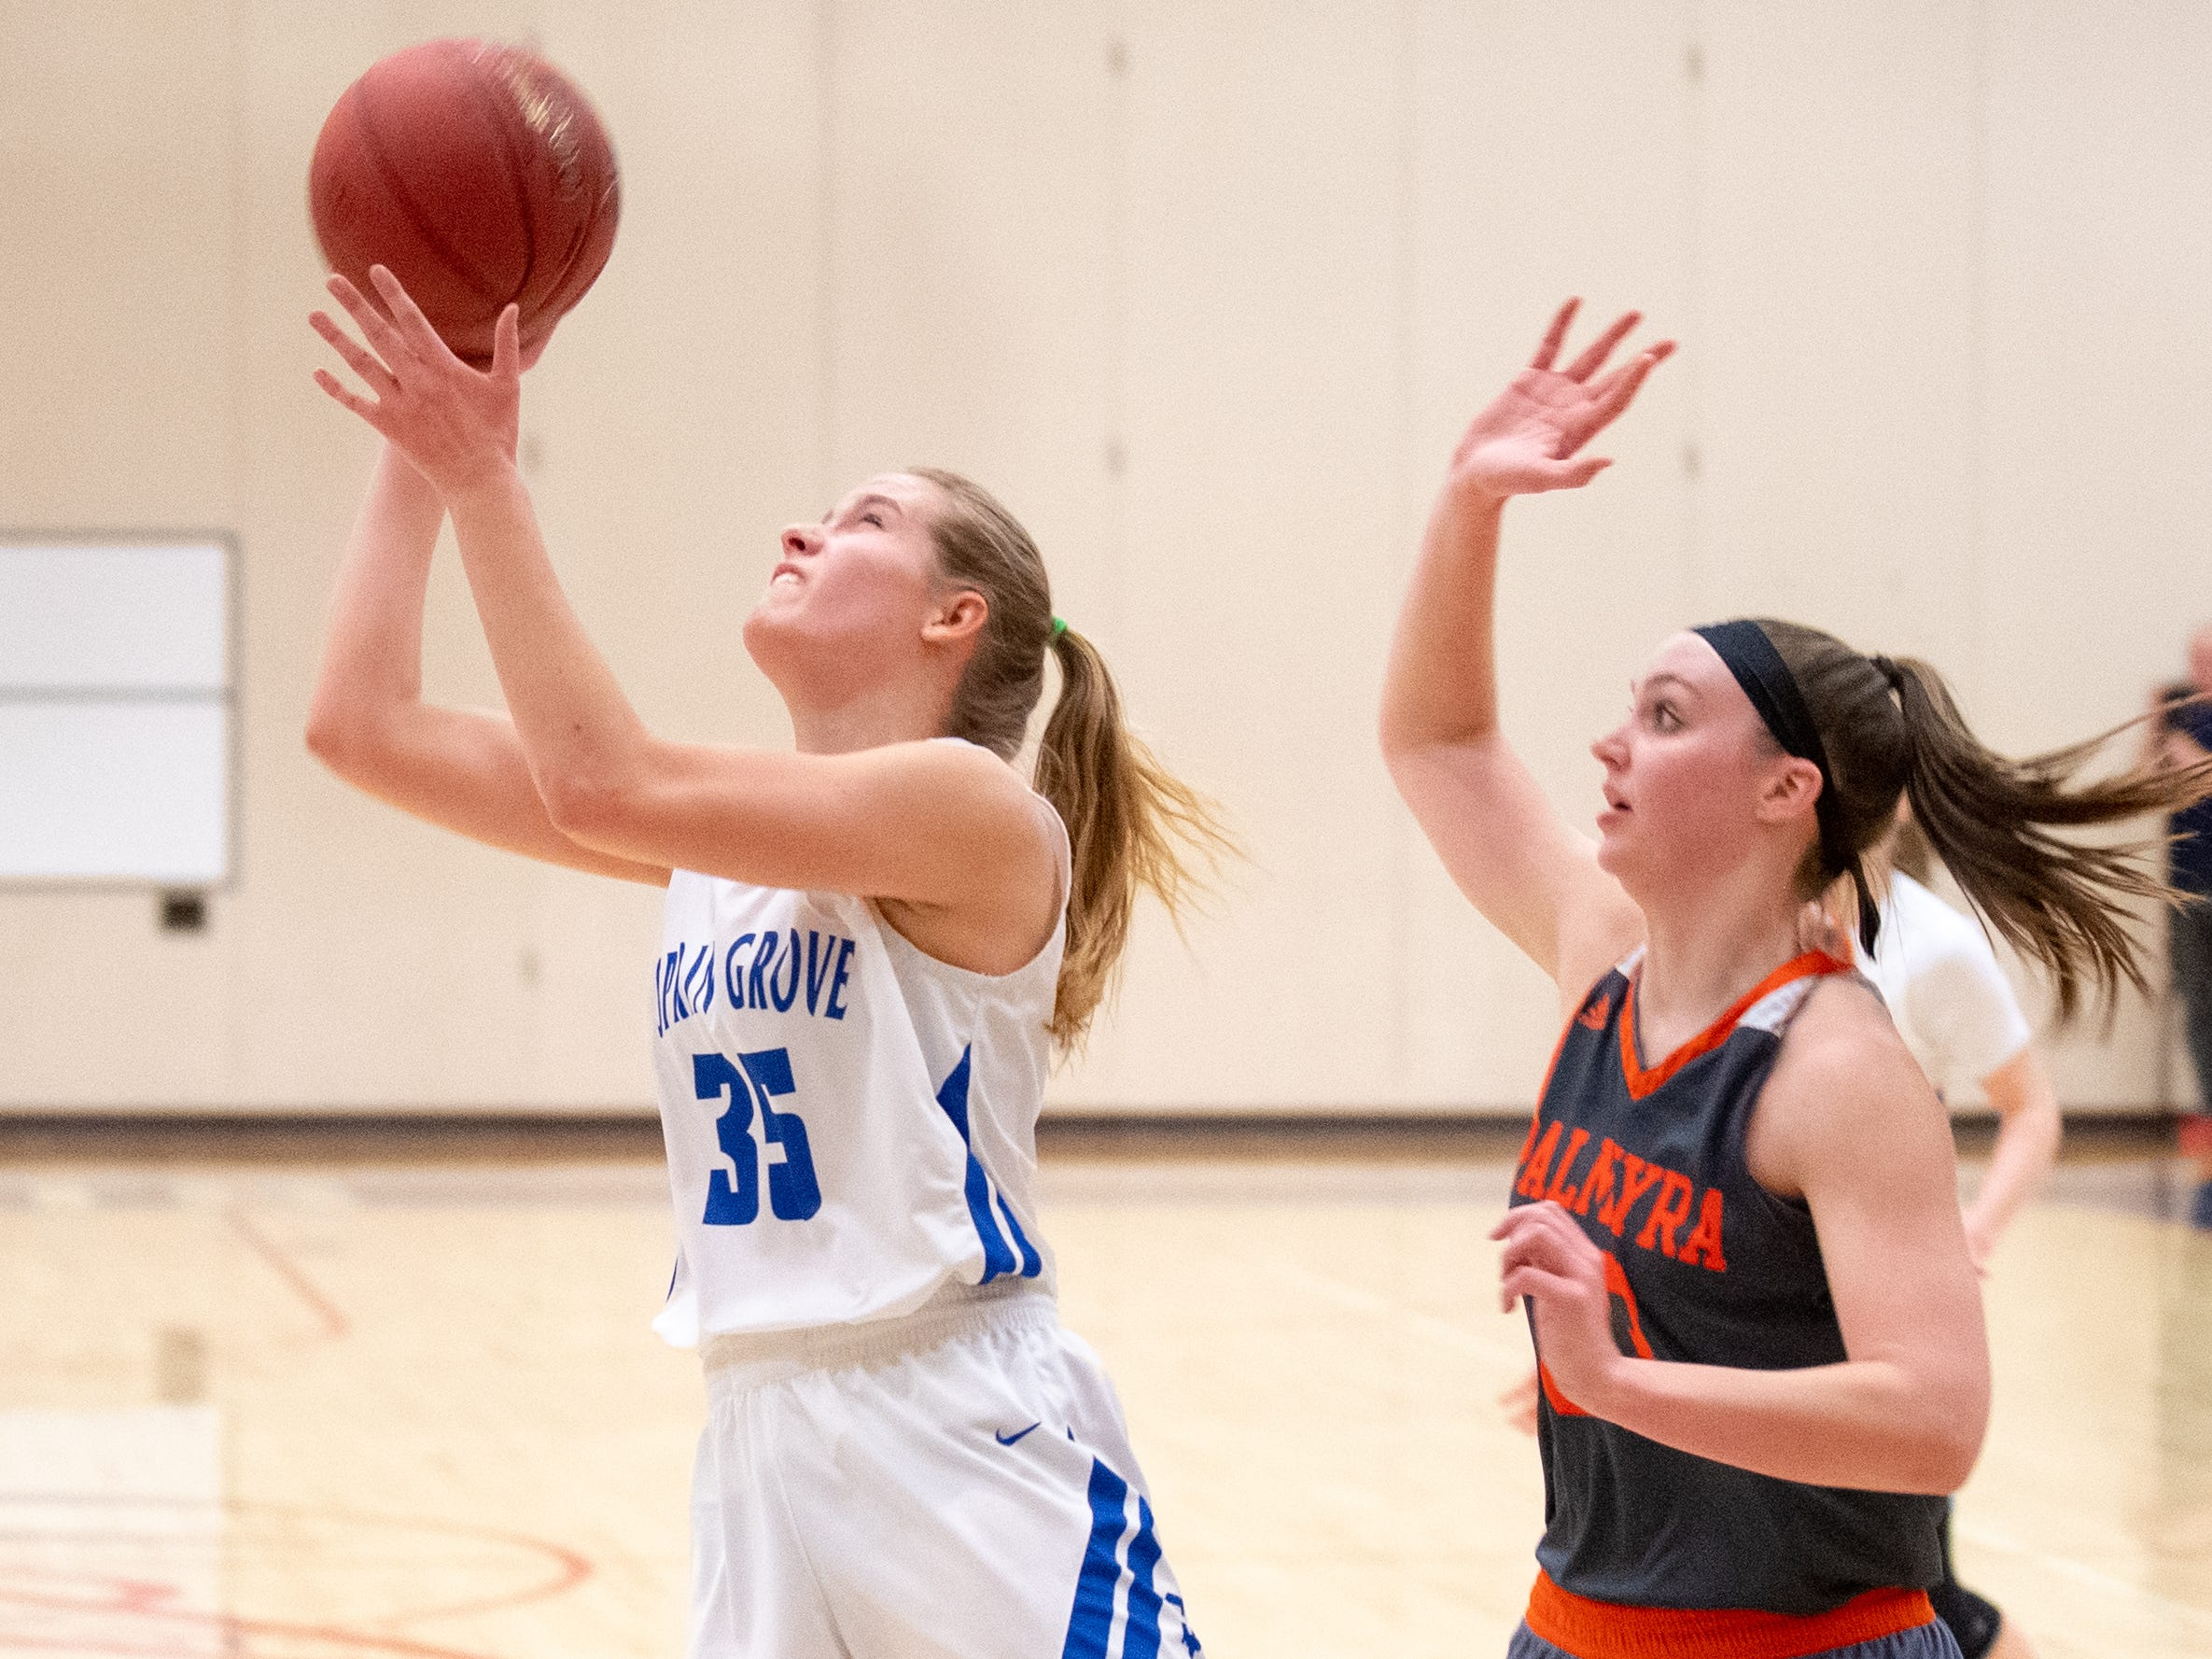 Brooklyn Naylor (35) takes the open layup during the District 3 Class 5A girls' basketball quarterfinal between Spring Grove and Palmyra, Friday, February 22, 2019 at Spring Grove Area High School. The Cougars defeated the Rockets 43 to 41.